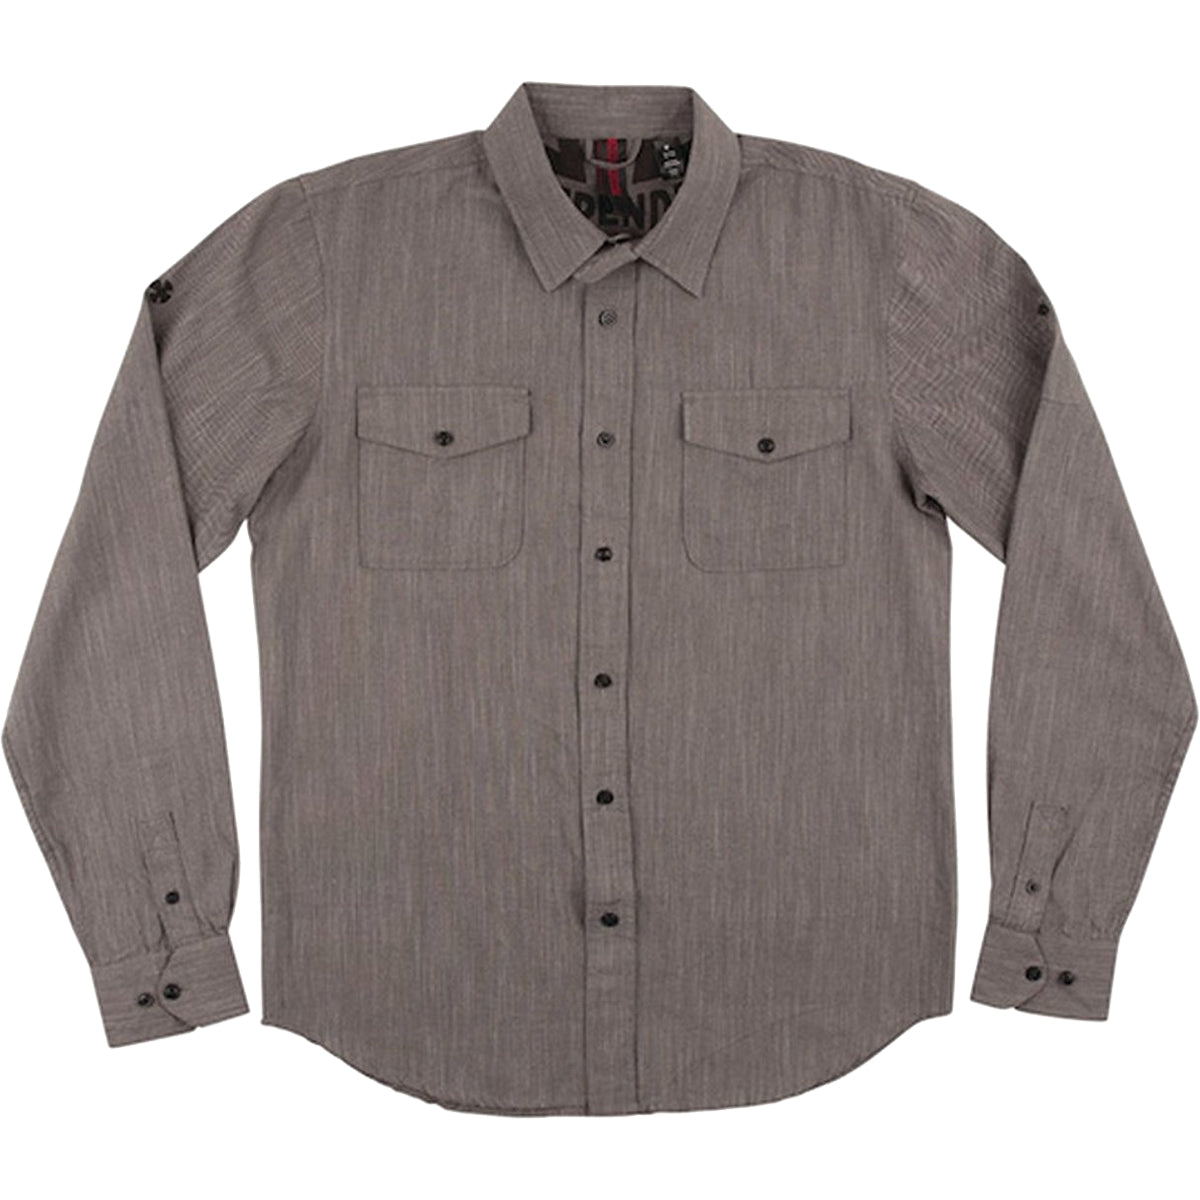 Independent Struggle Men's Button Up Long-Sleeve Shirts-44642081